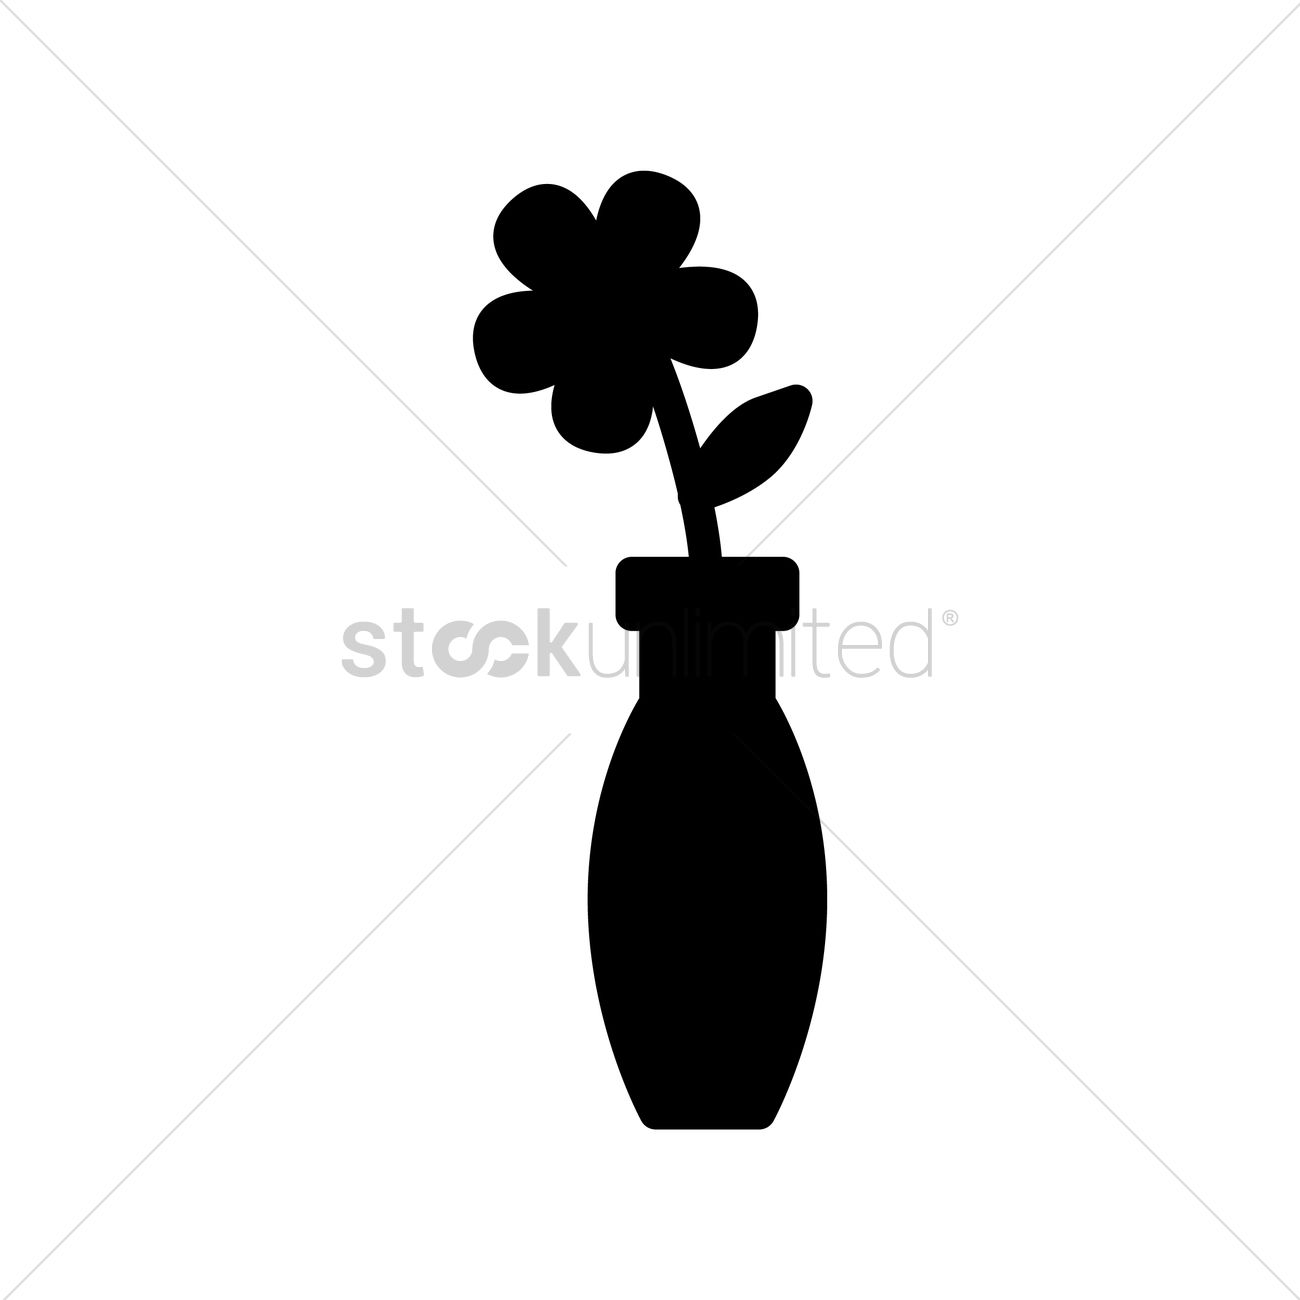 1300x1300 Silhouette Of Vase With Flower Vector Image